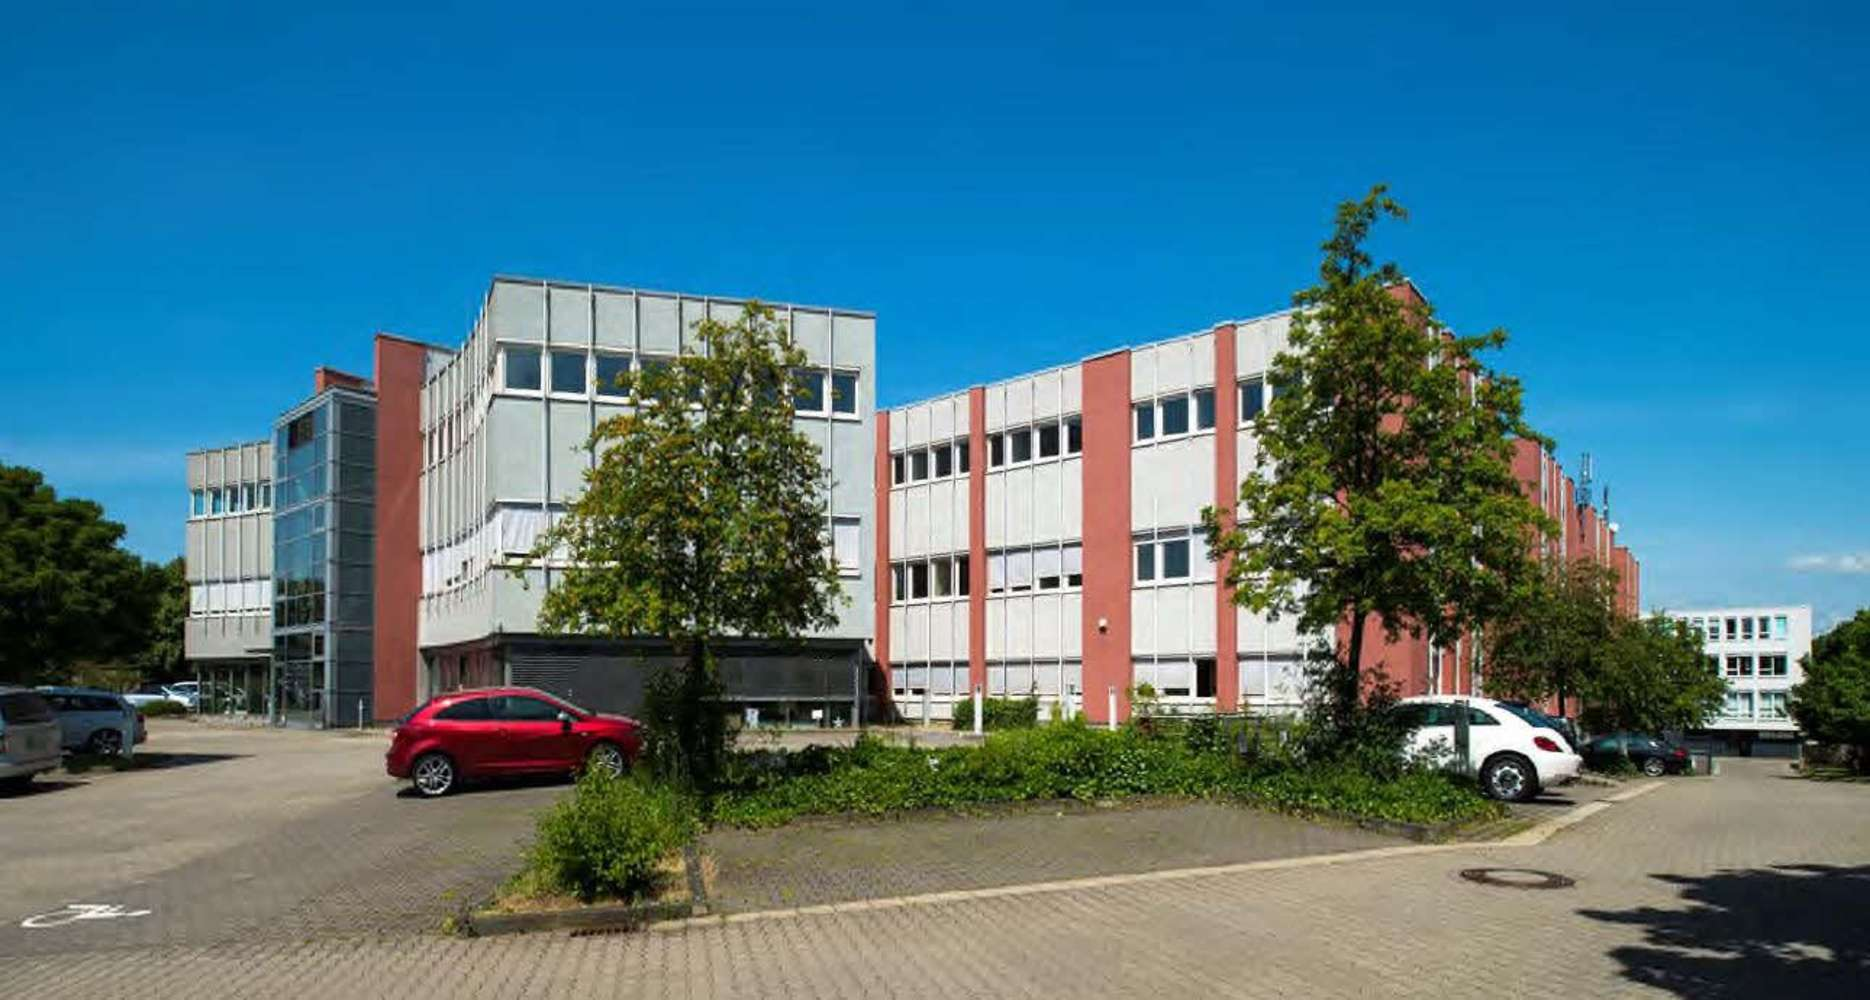 Büros Bad homburg, 61352 - Büro - Bad Homburg, Ober-Eschbach - F0273 - 9524835